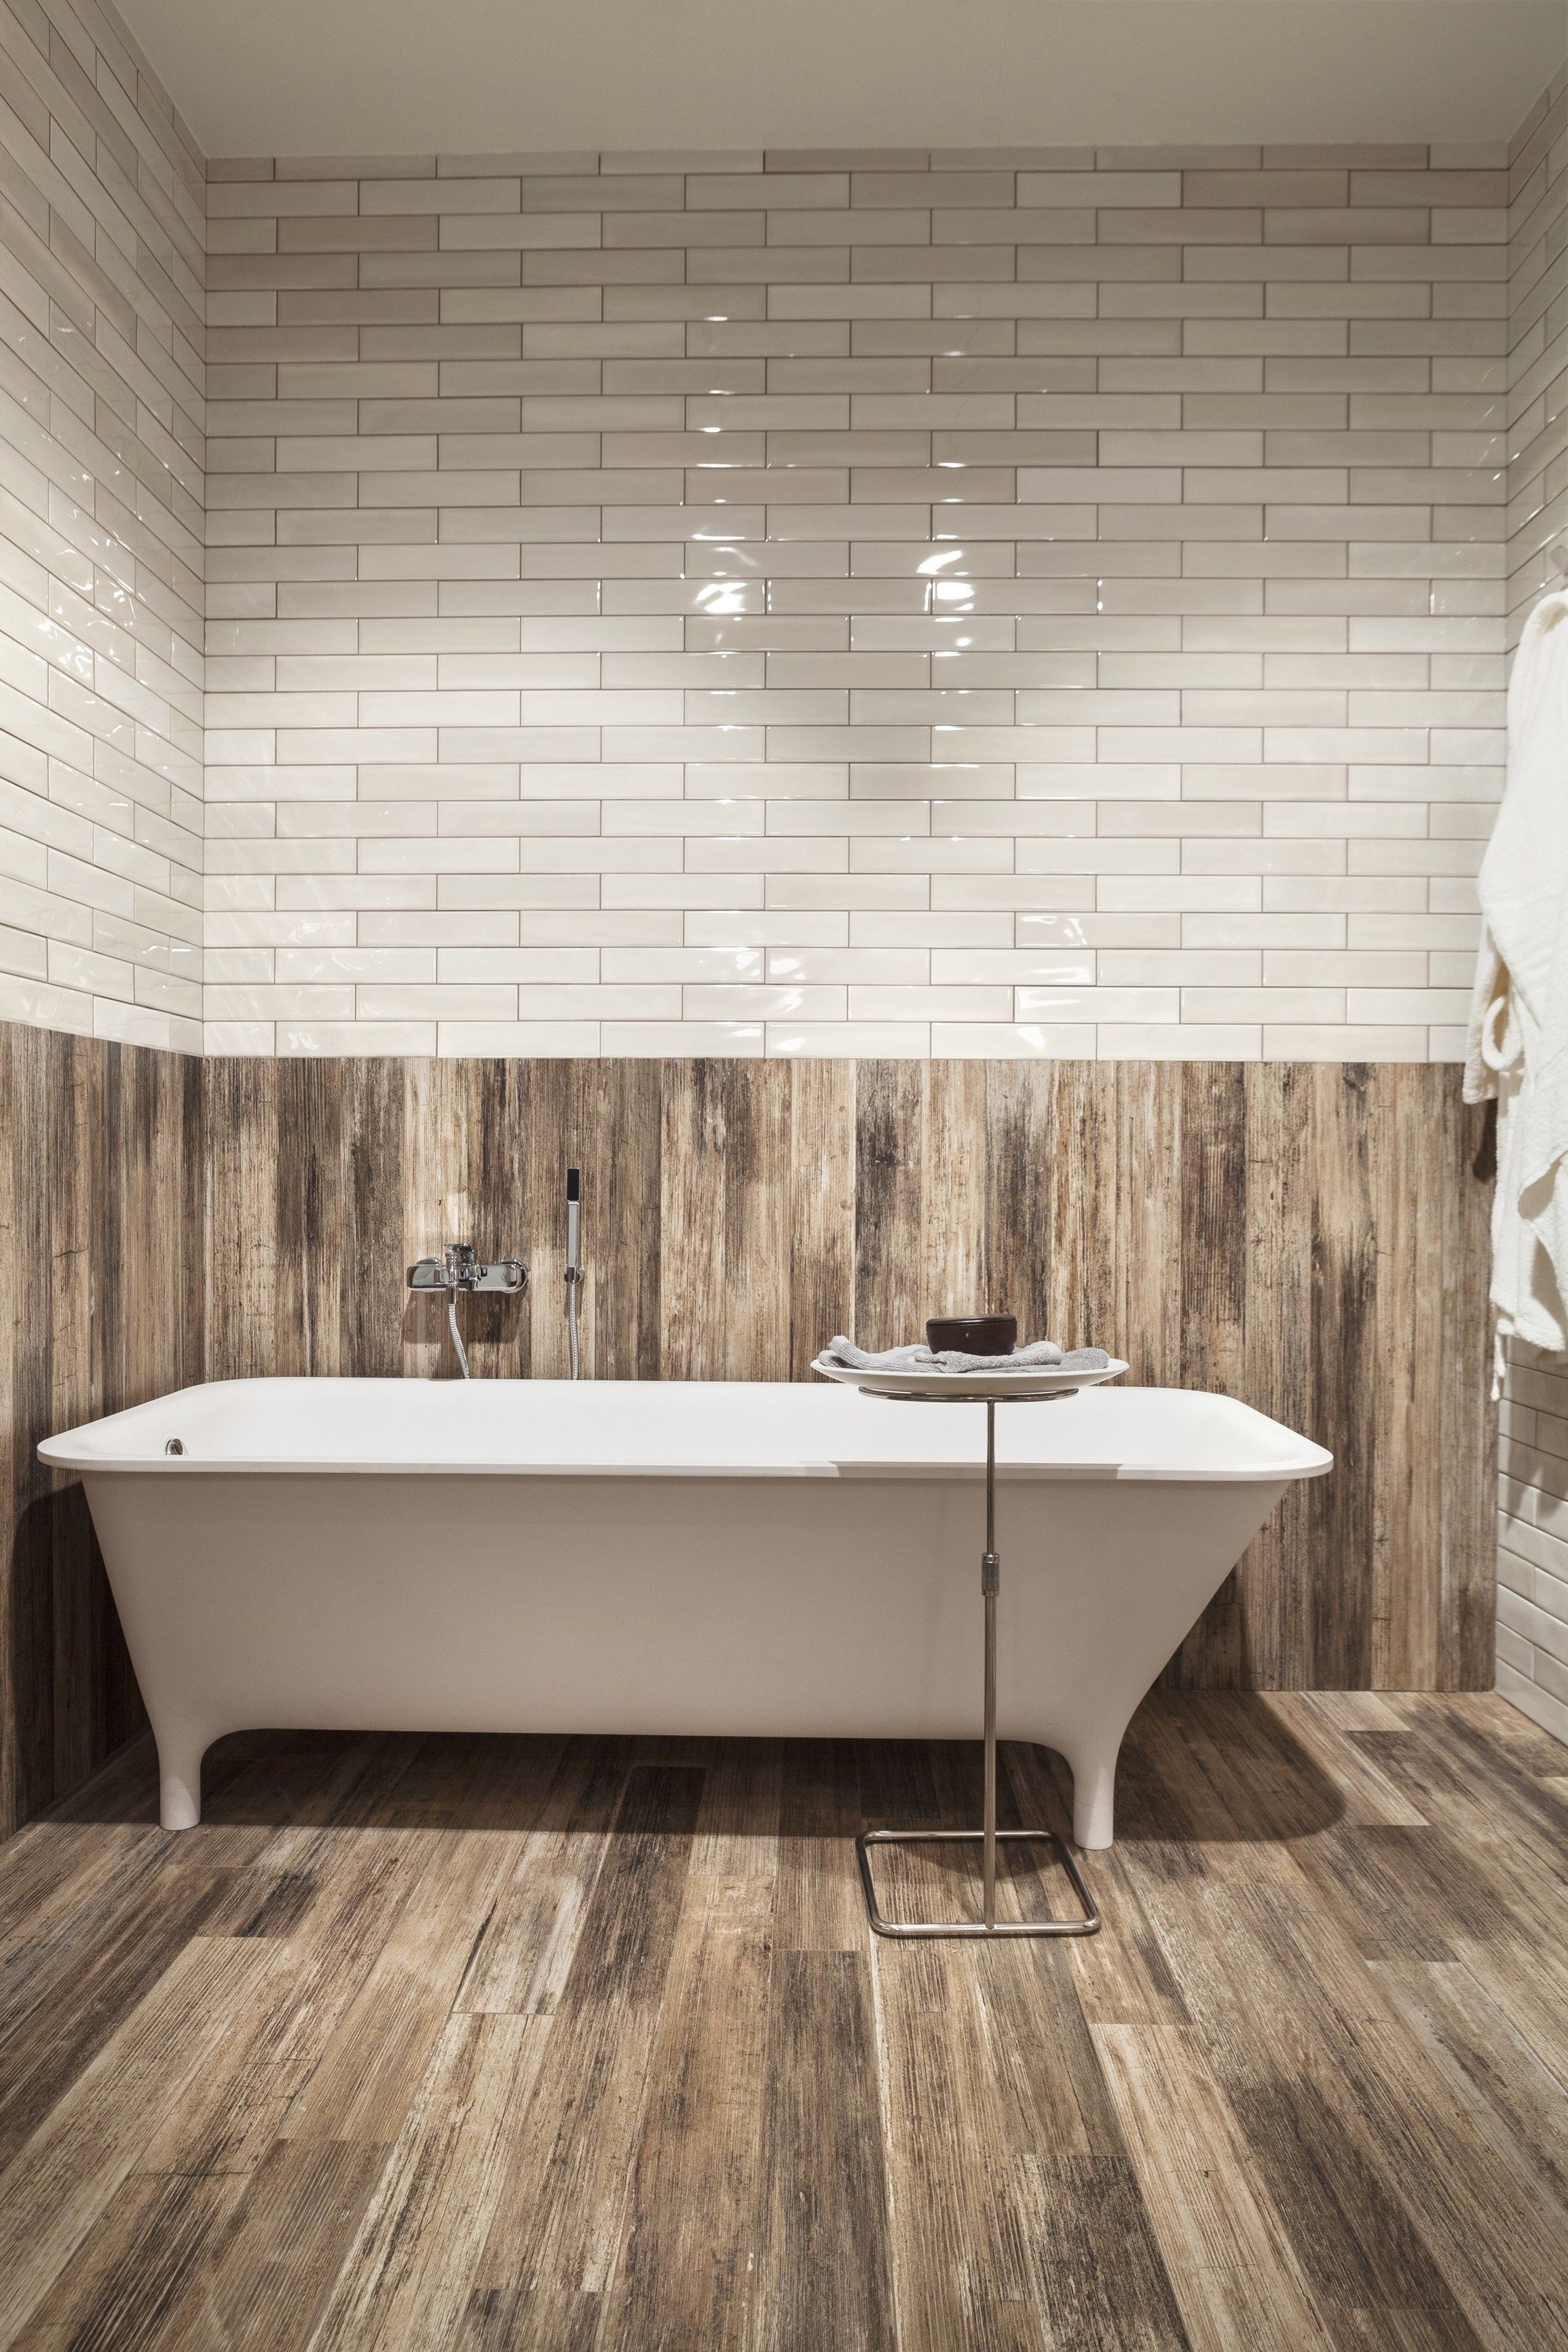 Porcelain stoneware wallfloor tiles with wood effect pictart by porcelain stoneware wallfloor tiles with wood effect pictart by ceramica santagostino dailygadgetfo Gallery